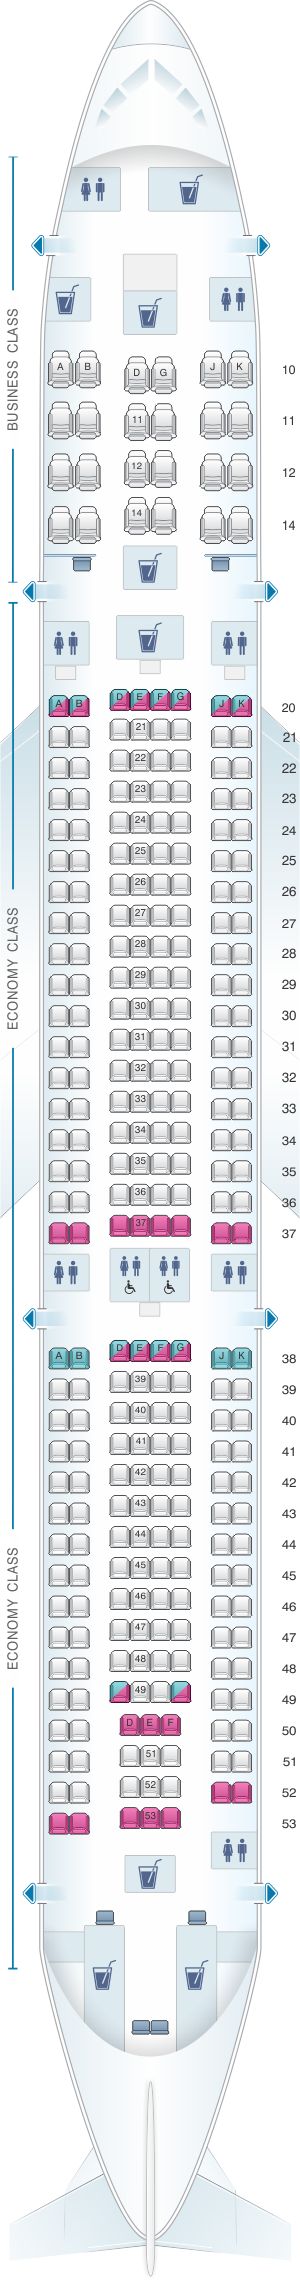 Seat map for Oman Air Airbus A330 300 V1